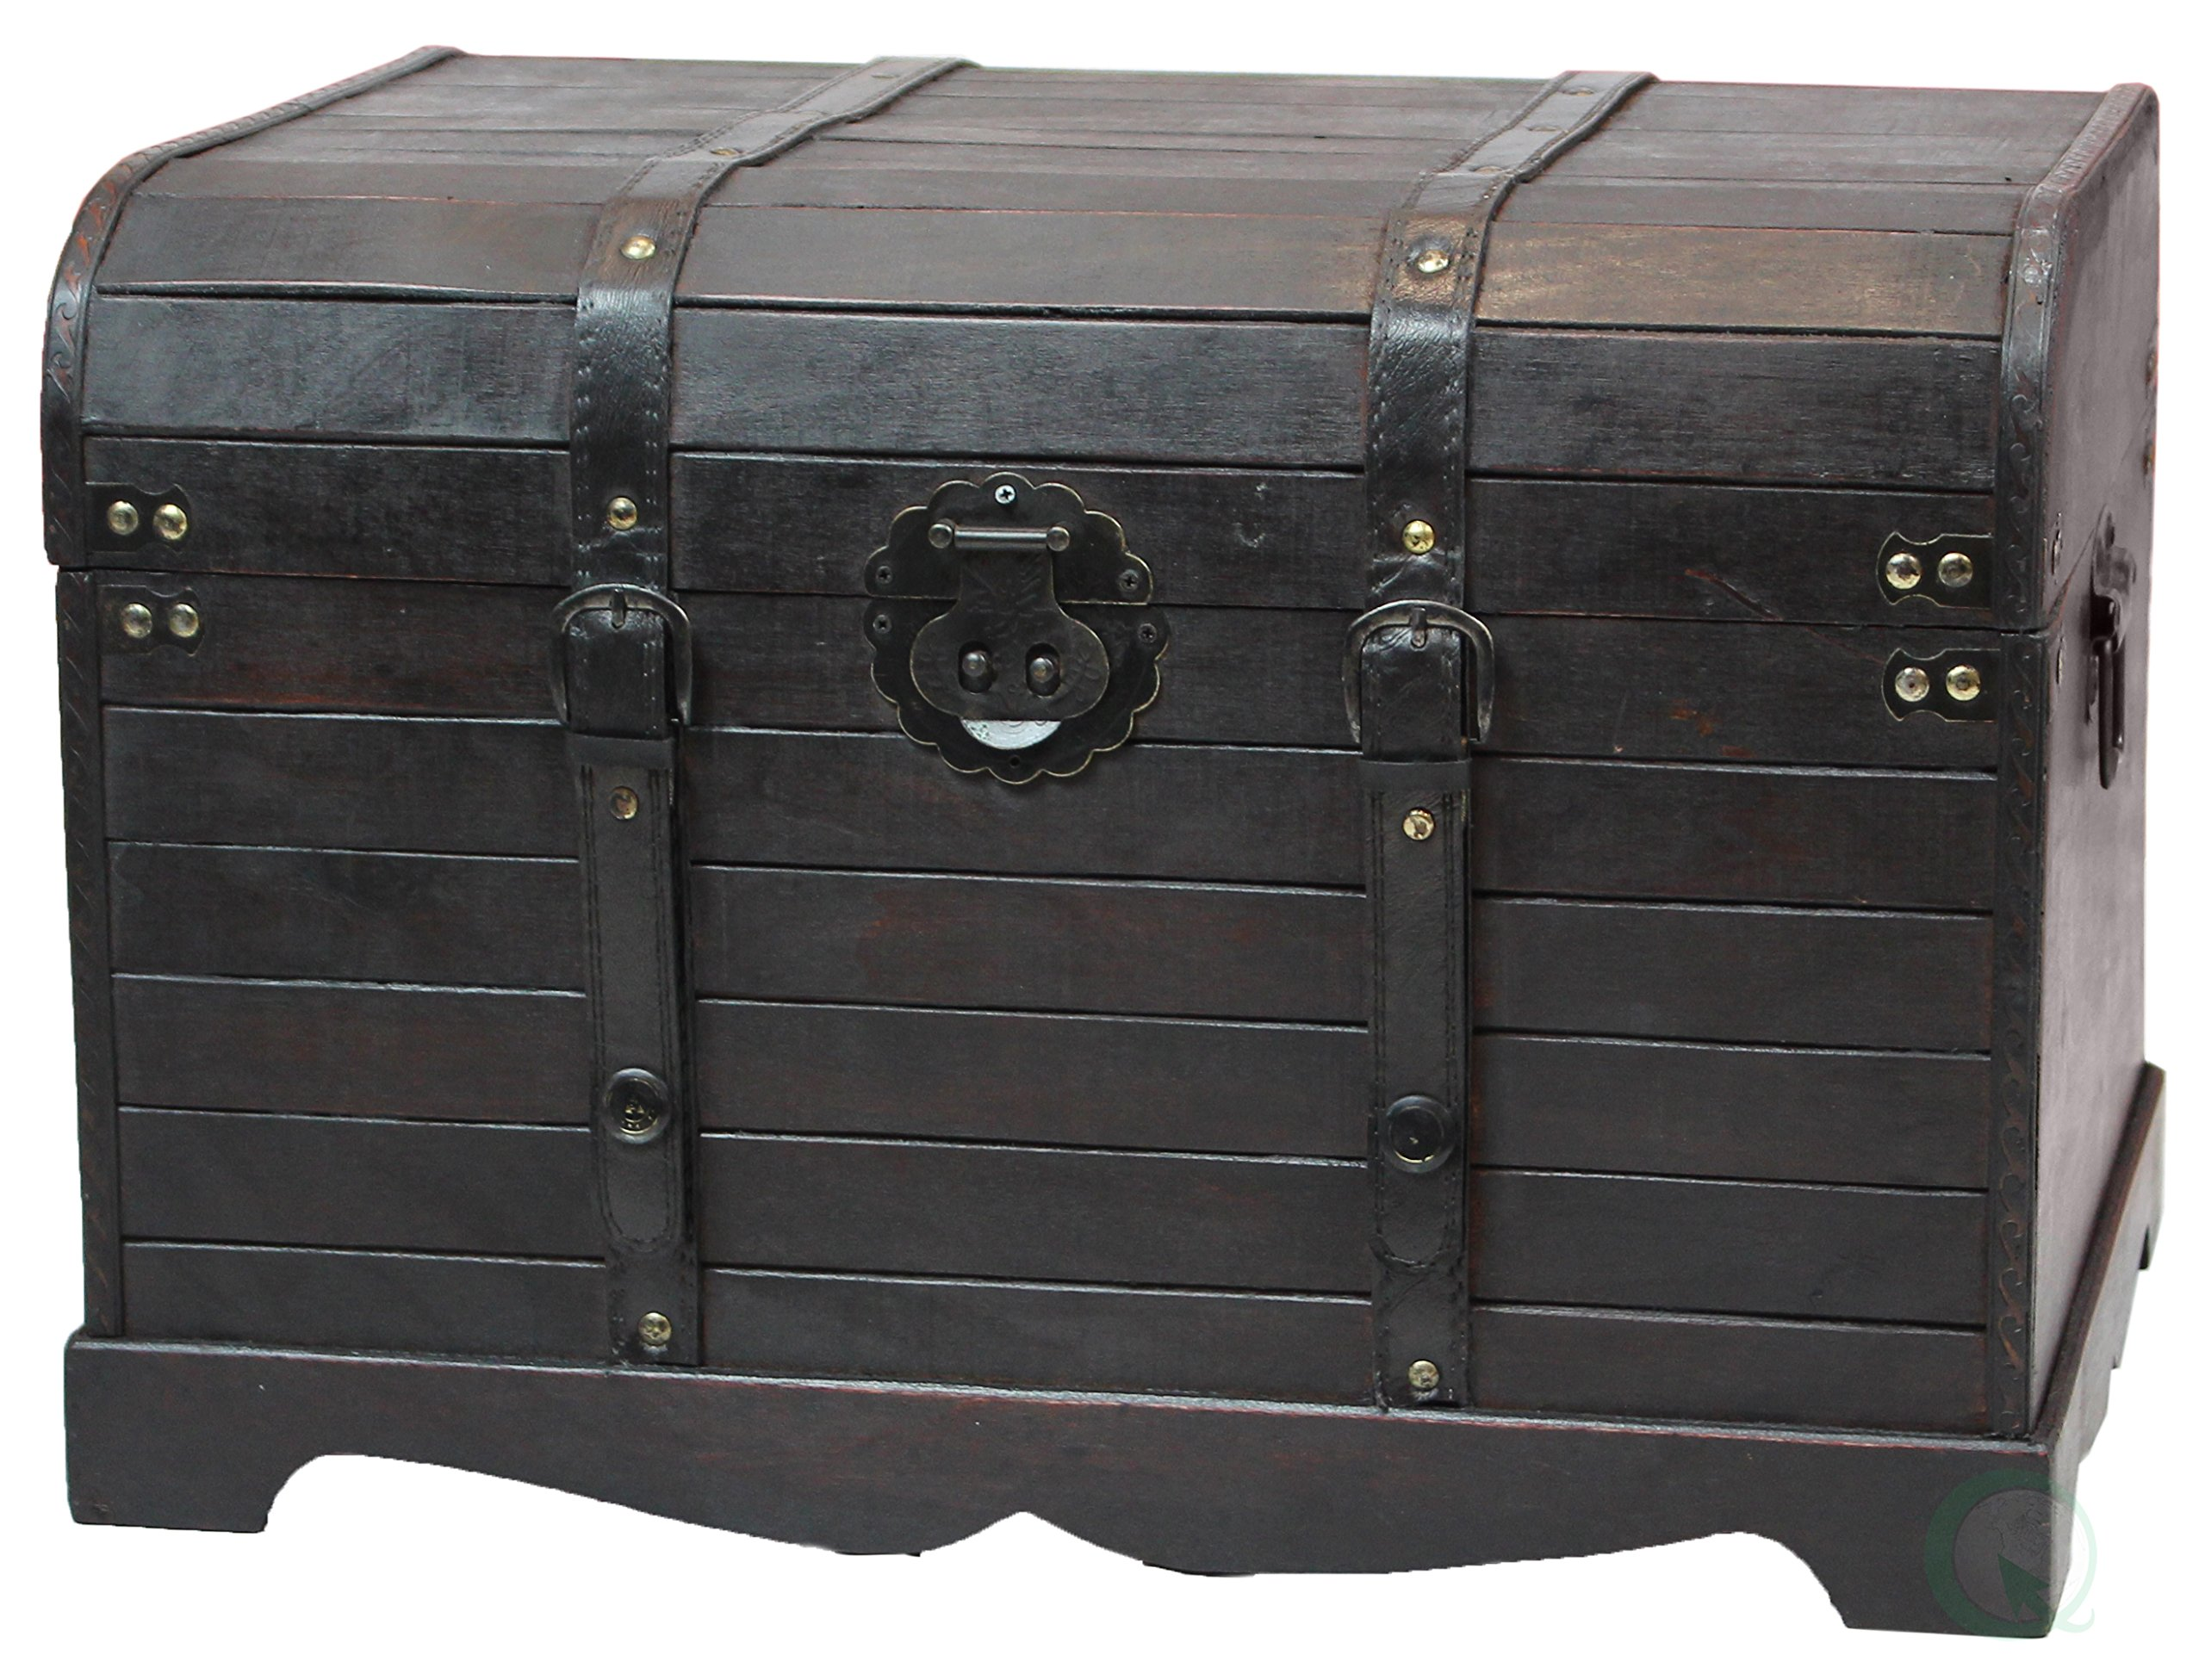 Antique Style Black Wooden Steamer Trunk, Coffee Table